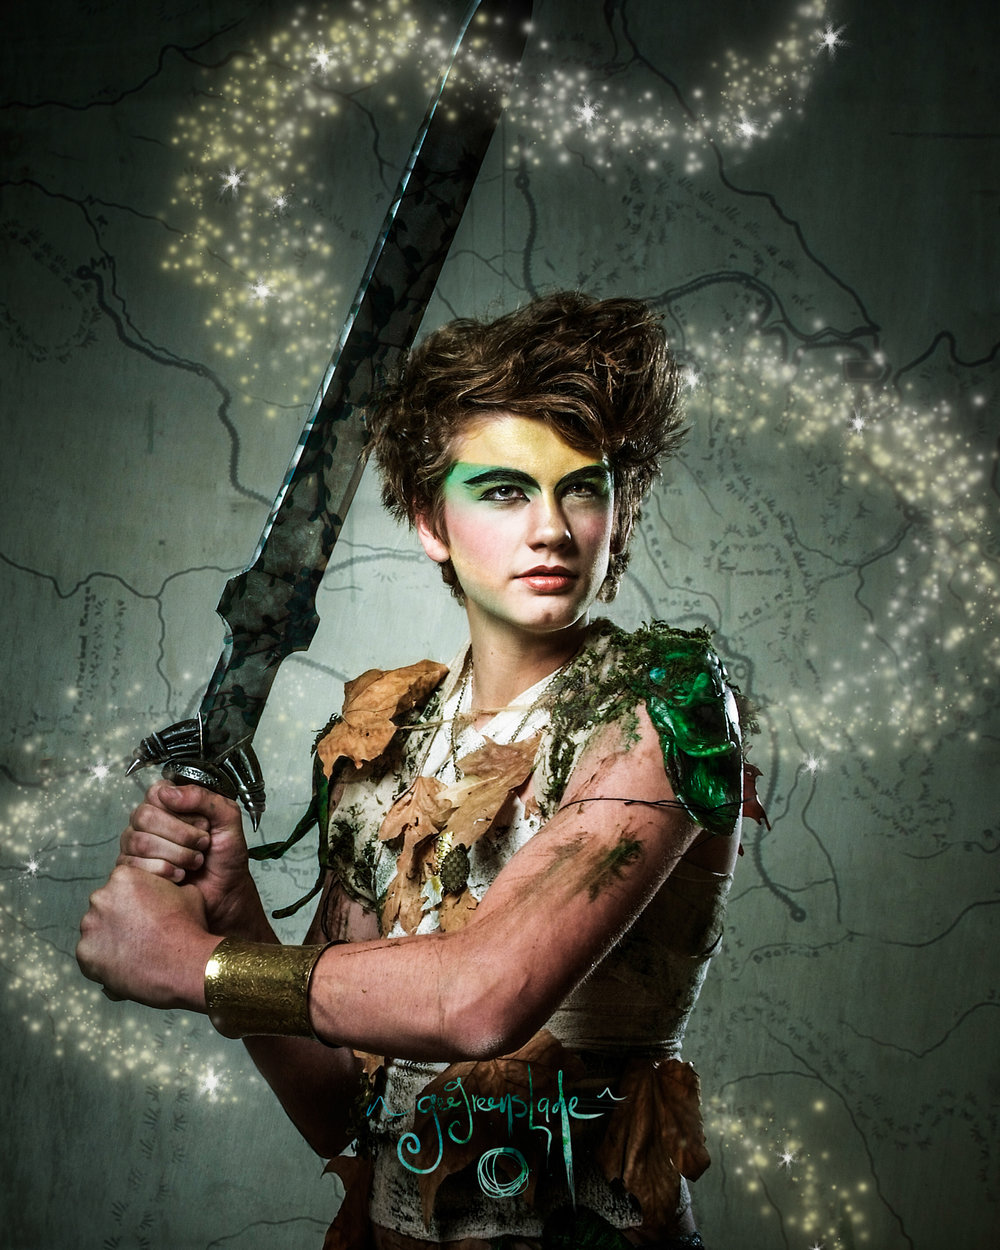 Gee-Greenslade-Artist-Photographer-Adelaide-South-Australia-peter-pan.jpg